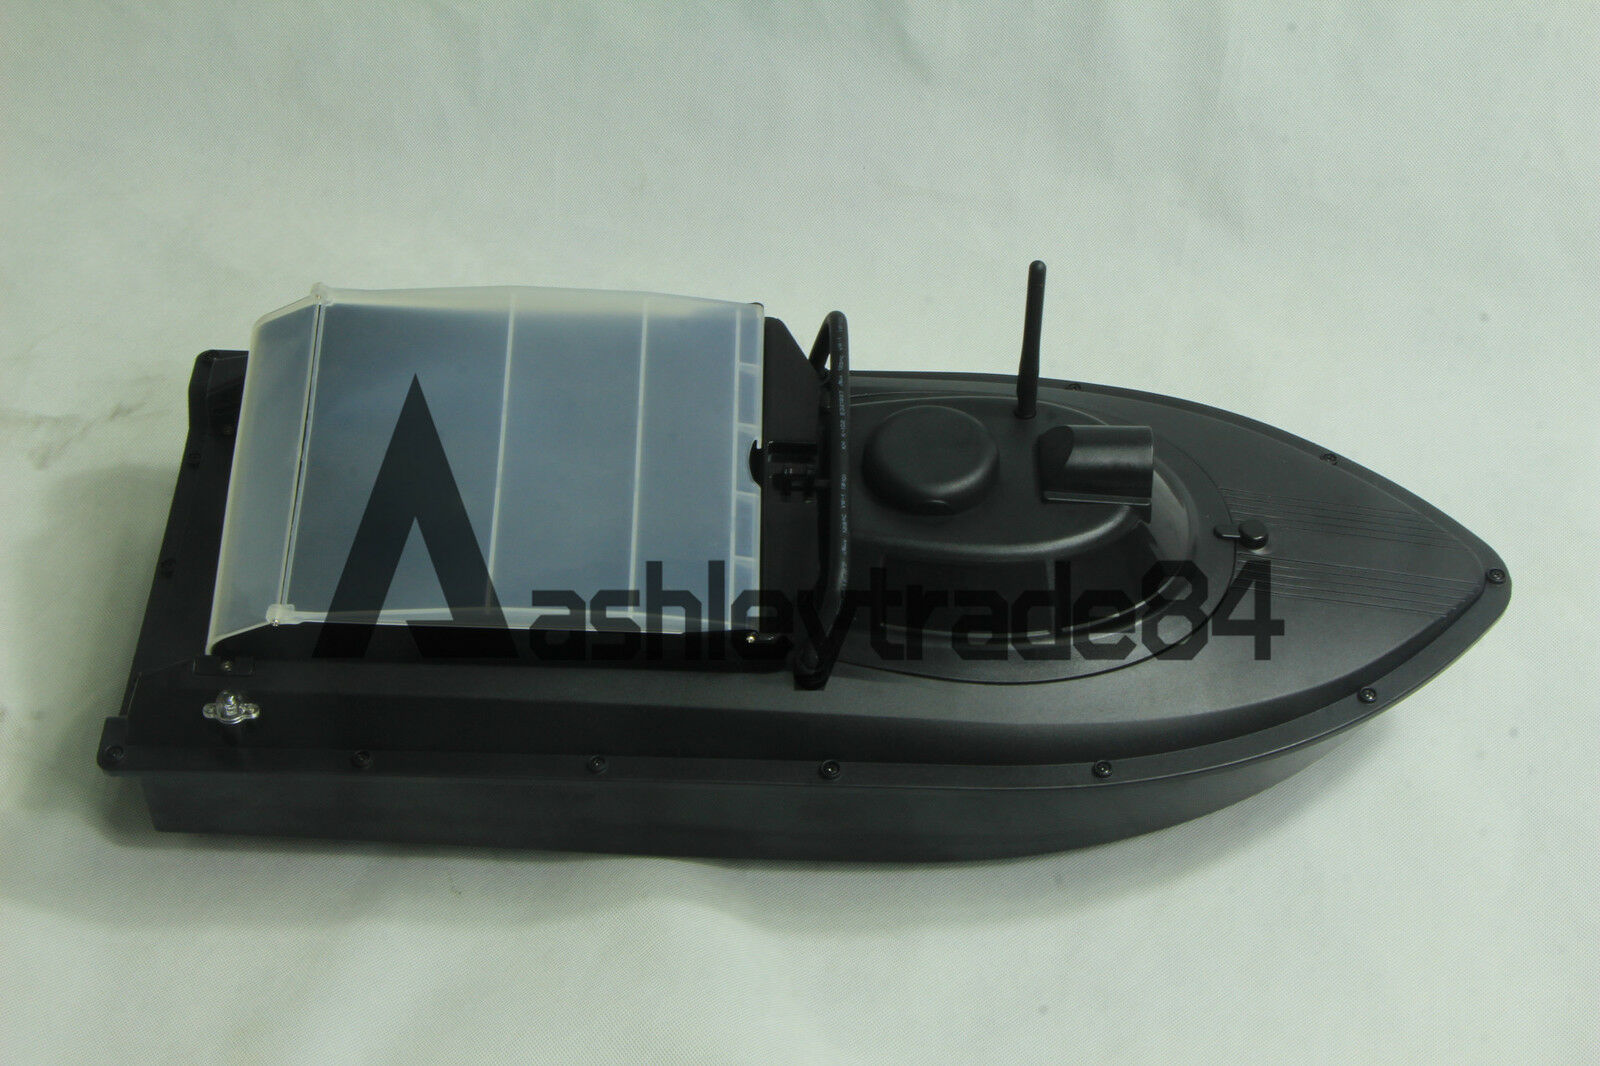 JABO-2AD 10A Wireless Lure Fishing Tackle Bait Boat Remote Control RC Boat